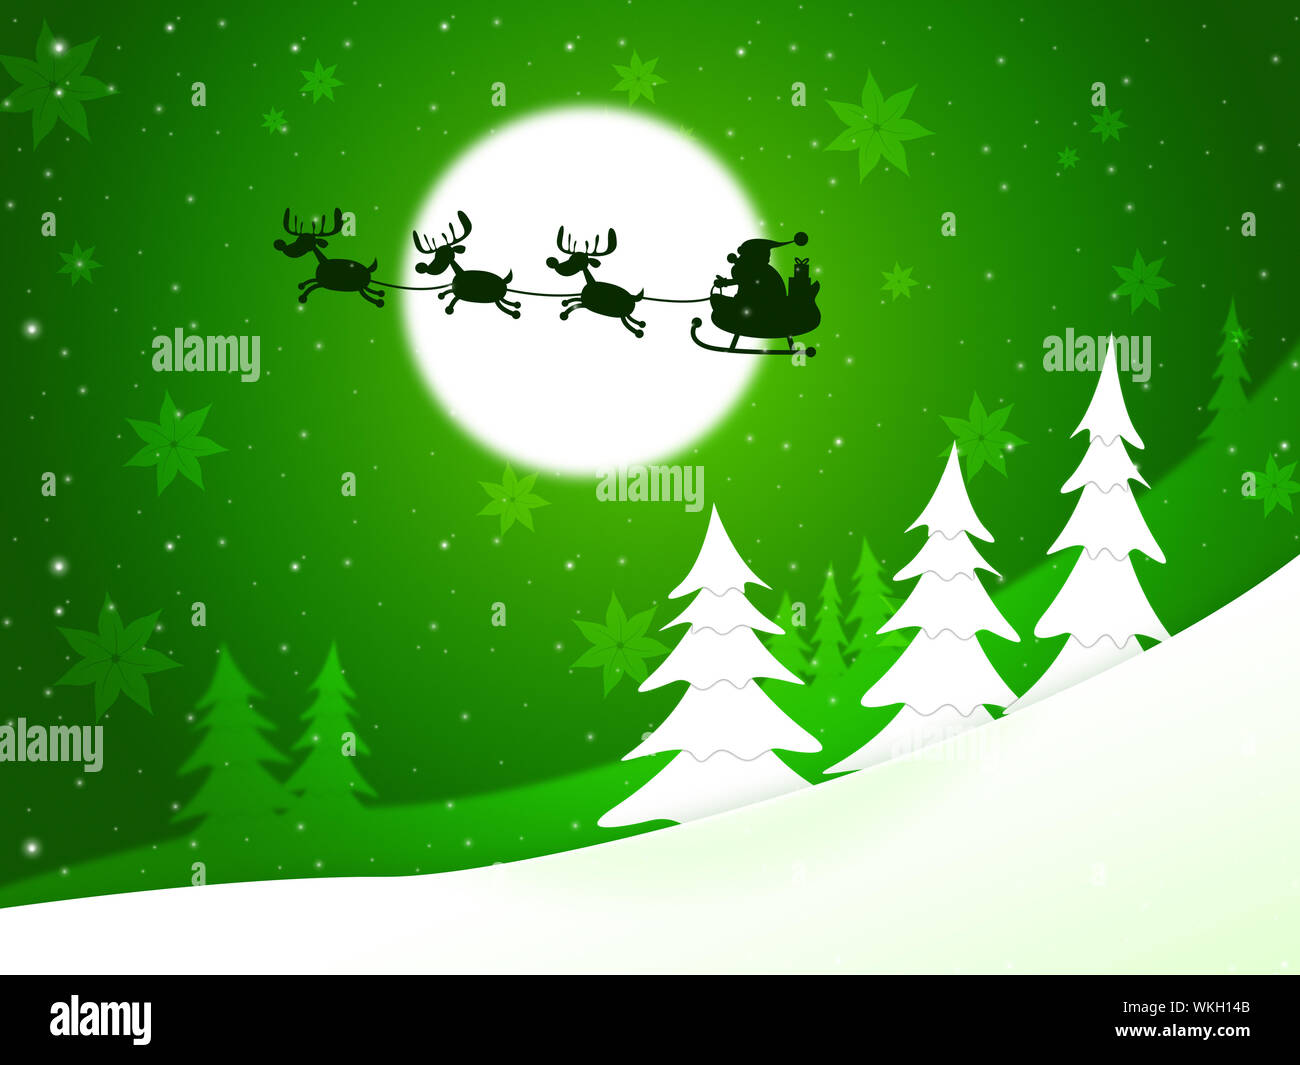 Christmas Tree Meaning.Xmas Tree Meaning Father Christmas And X Mas Stock Photo